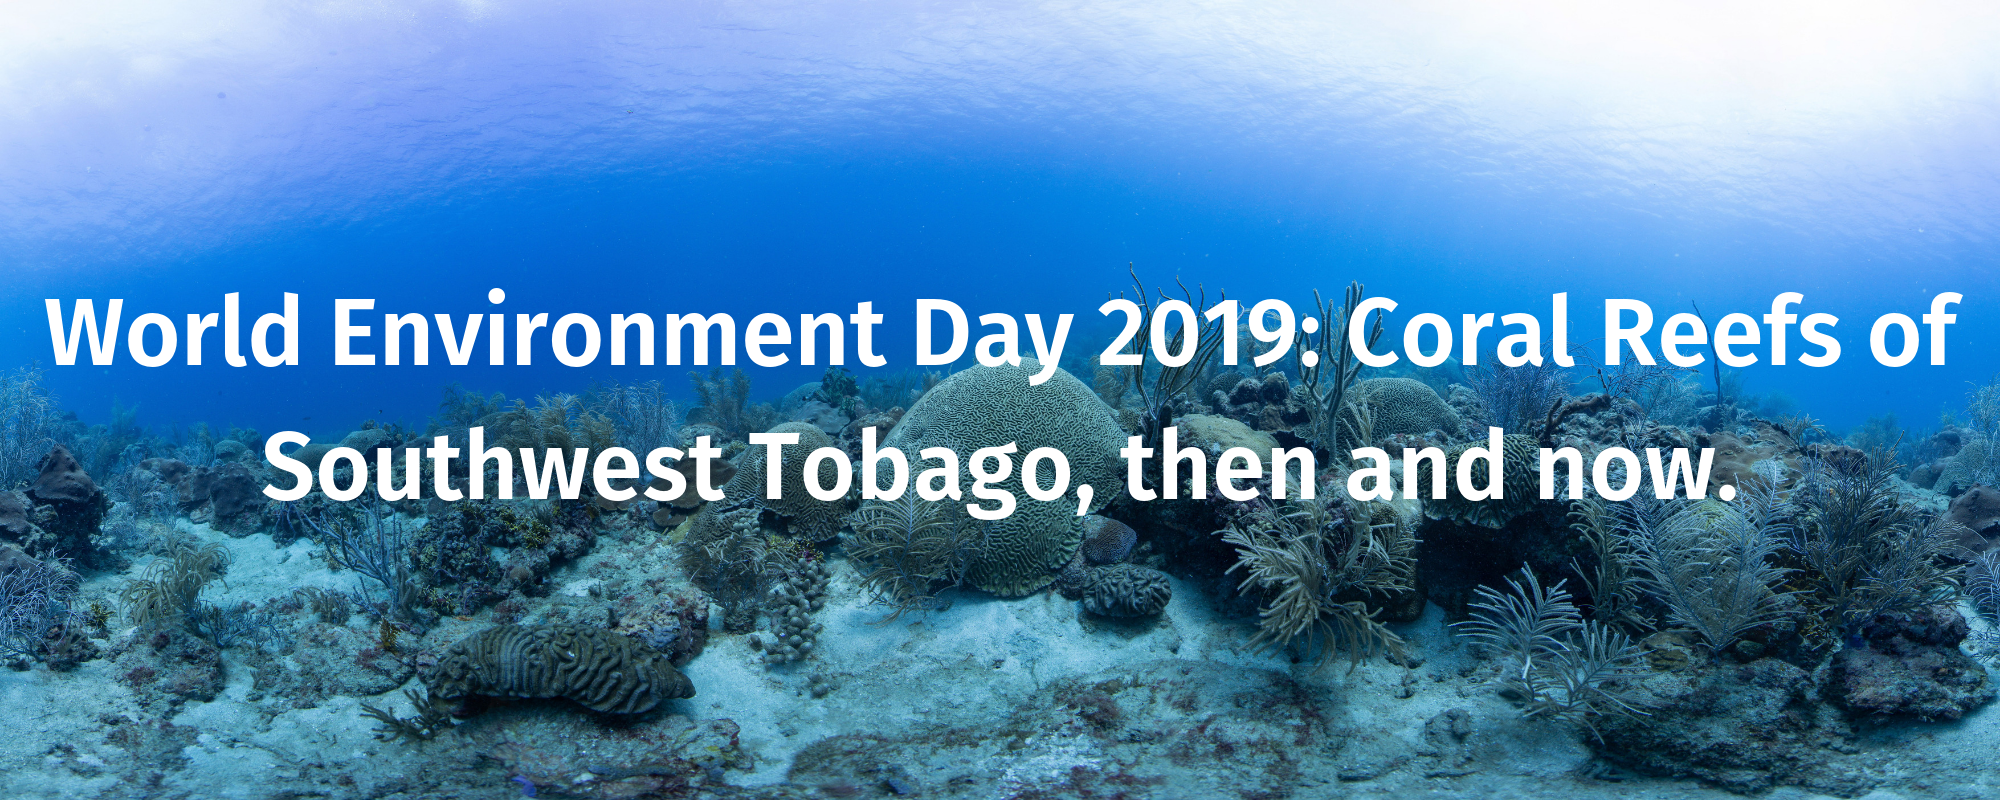 World Environment Day 2019:  Coral Reefs of Southwest Tobago, then and now.